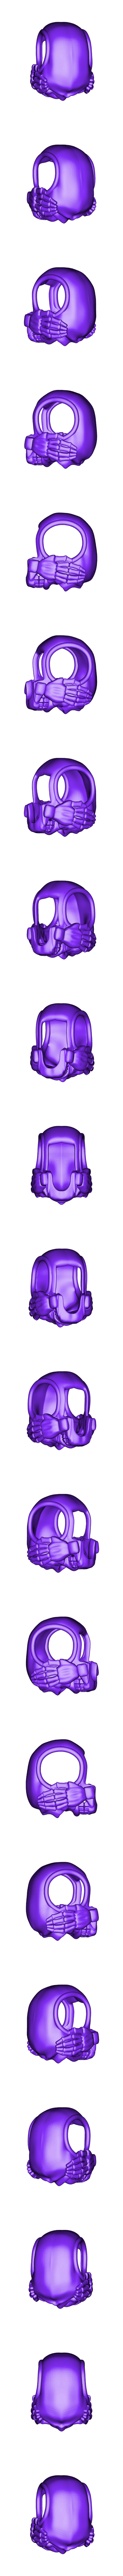 s3.stl Download free STL file three wise skull • 3D print object, Janusz